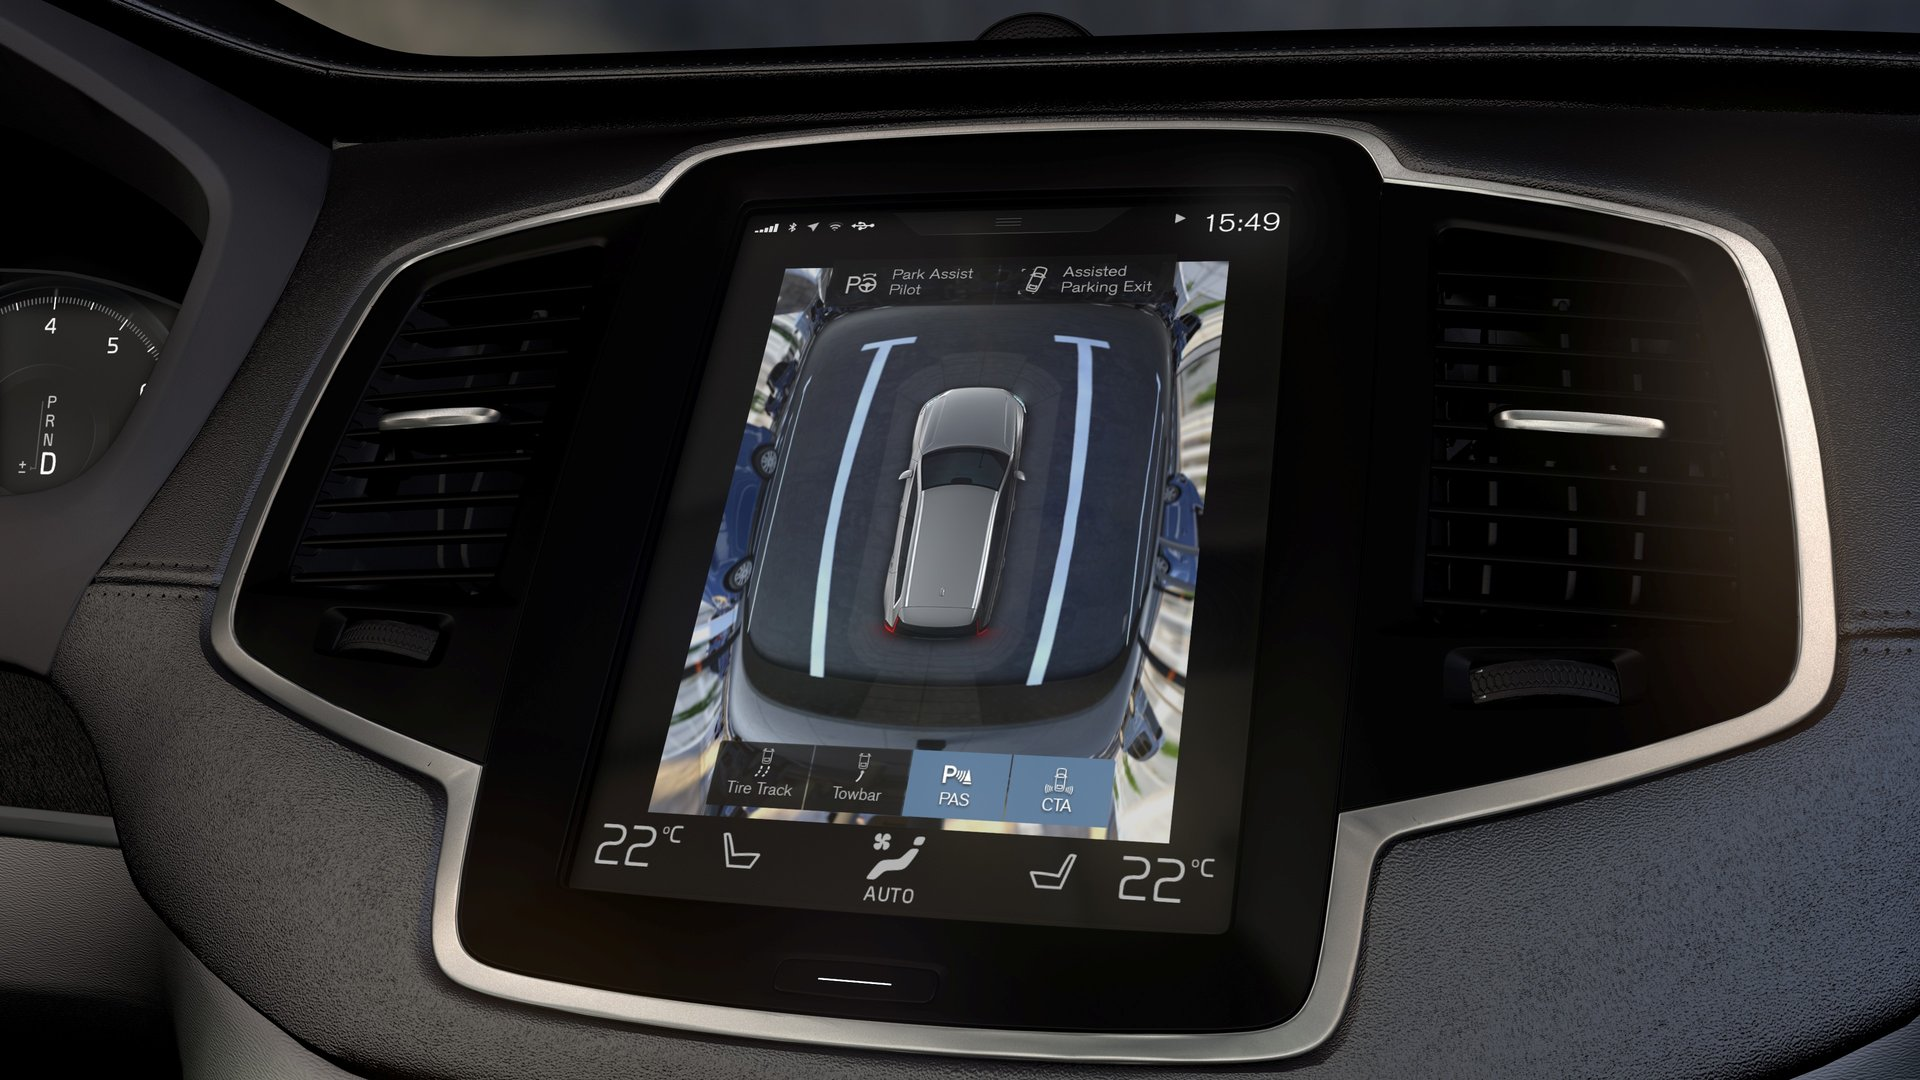 2016 Volvo Xc90 Tablet Like Sensus Is The Future Of Infotainment